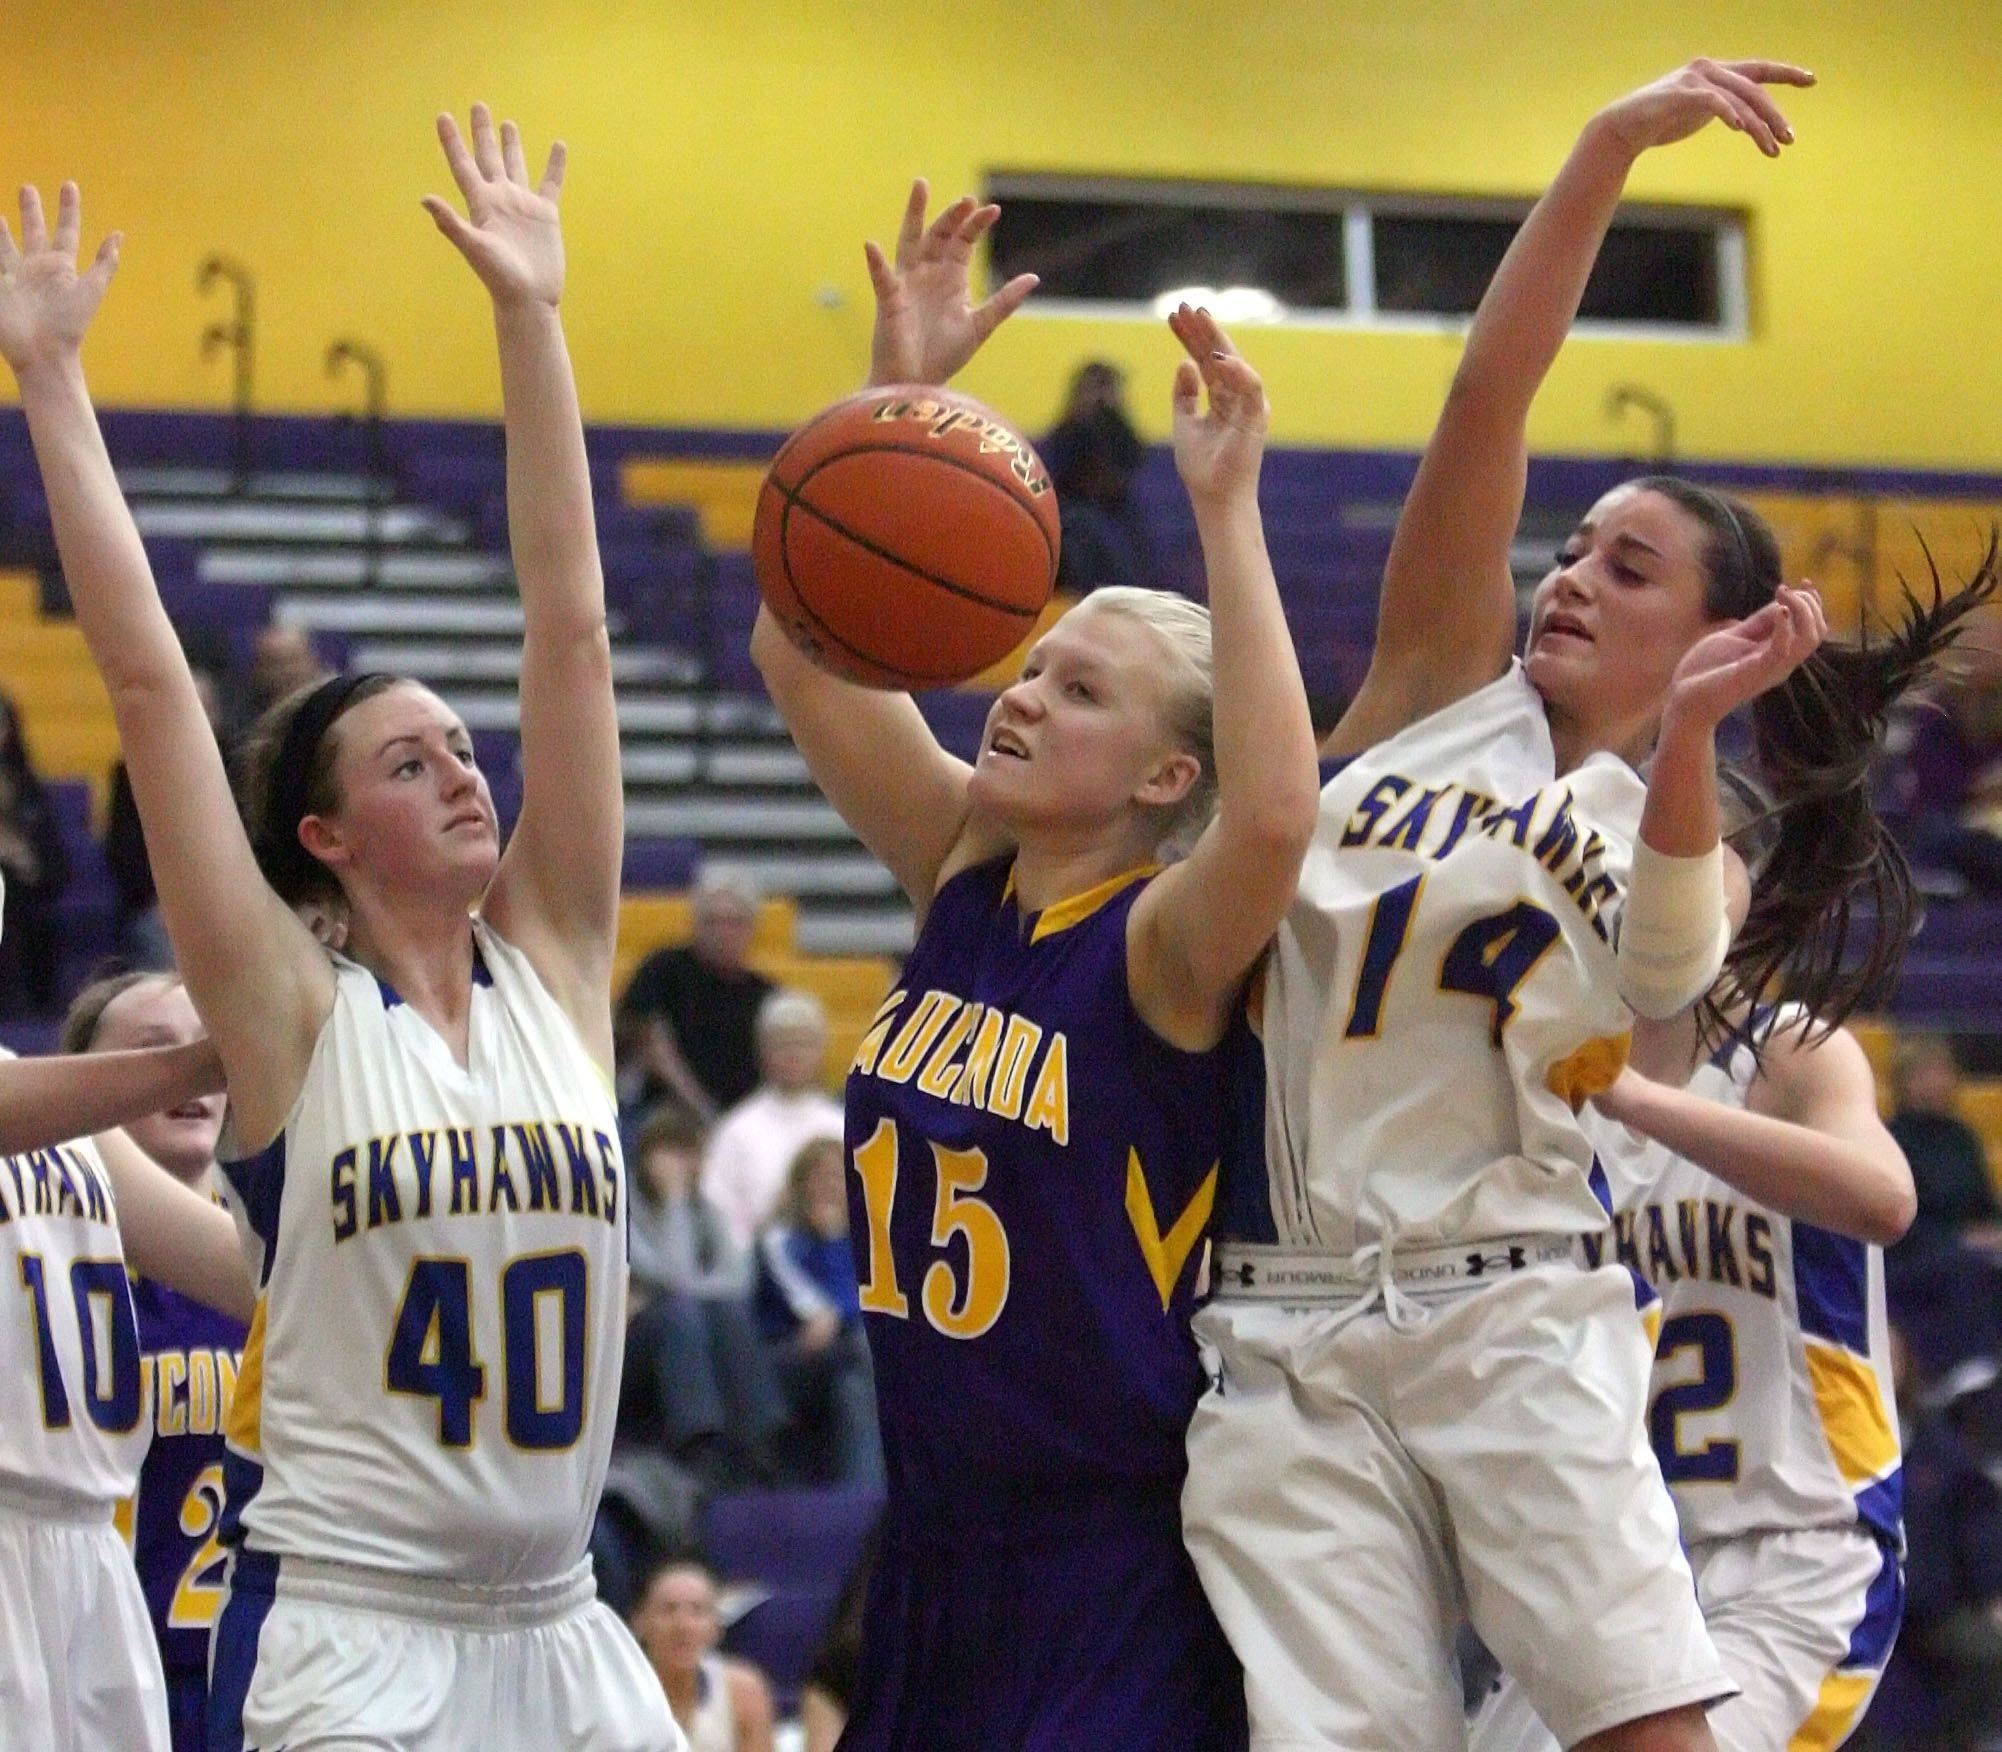 Wauconda's Lexie Redmann, center, battles for a rebound with Johnsburg's Ashley Schuld, left, and Tayelor Neiss on Wednesday night at Wauconda.